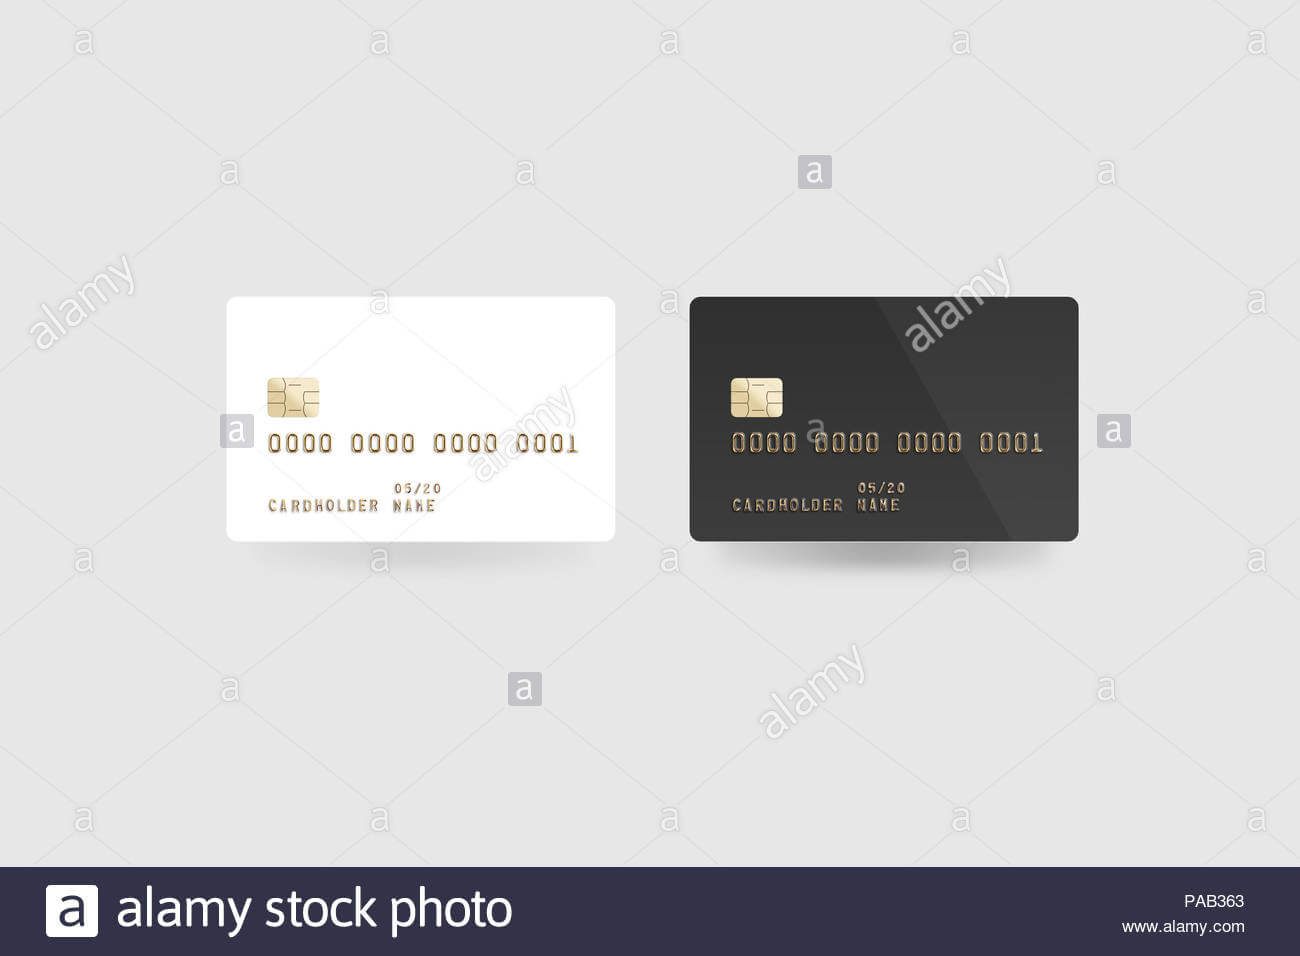 Blank White Credit Card Mockup Isolated, Clipping Path With Credit Card Templates For Sale